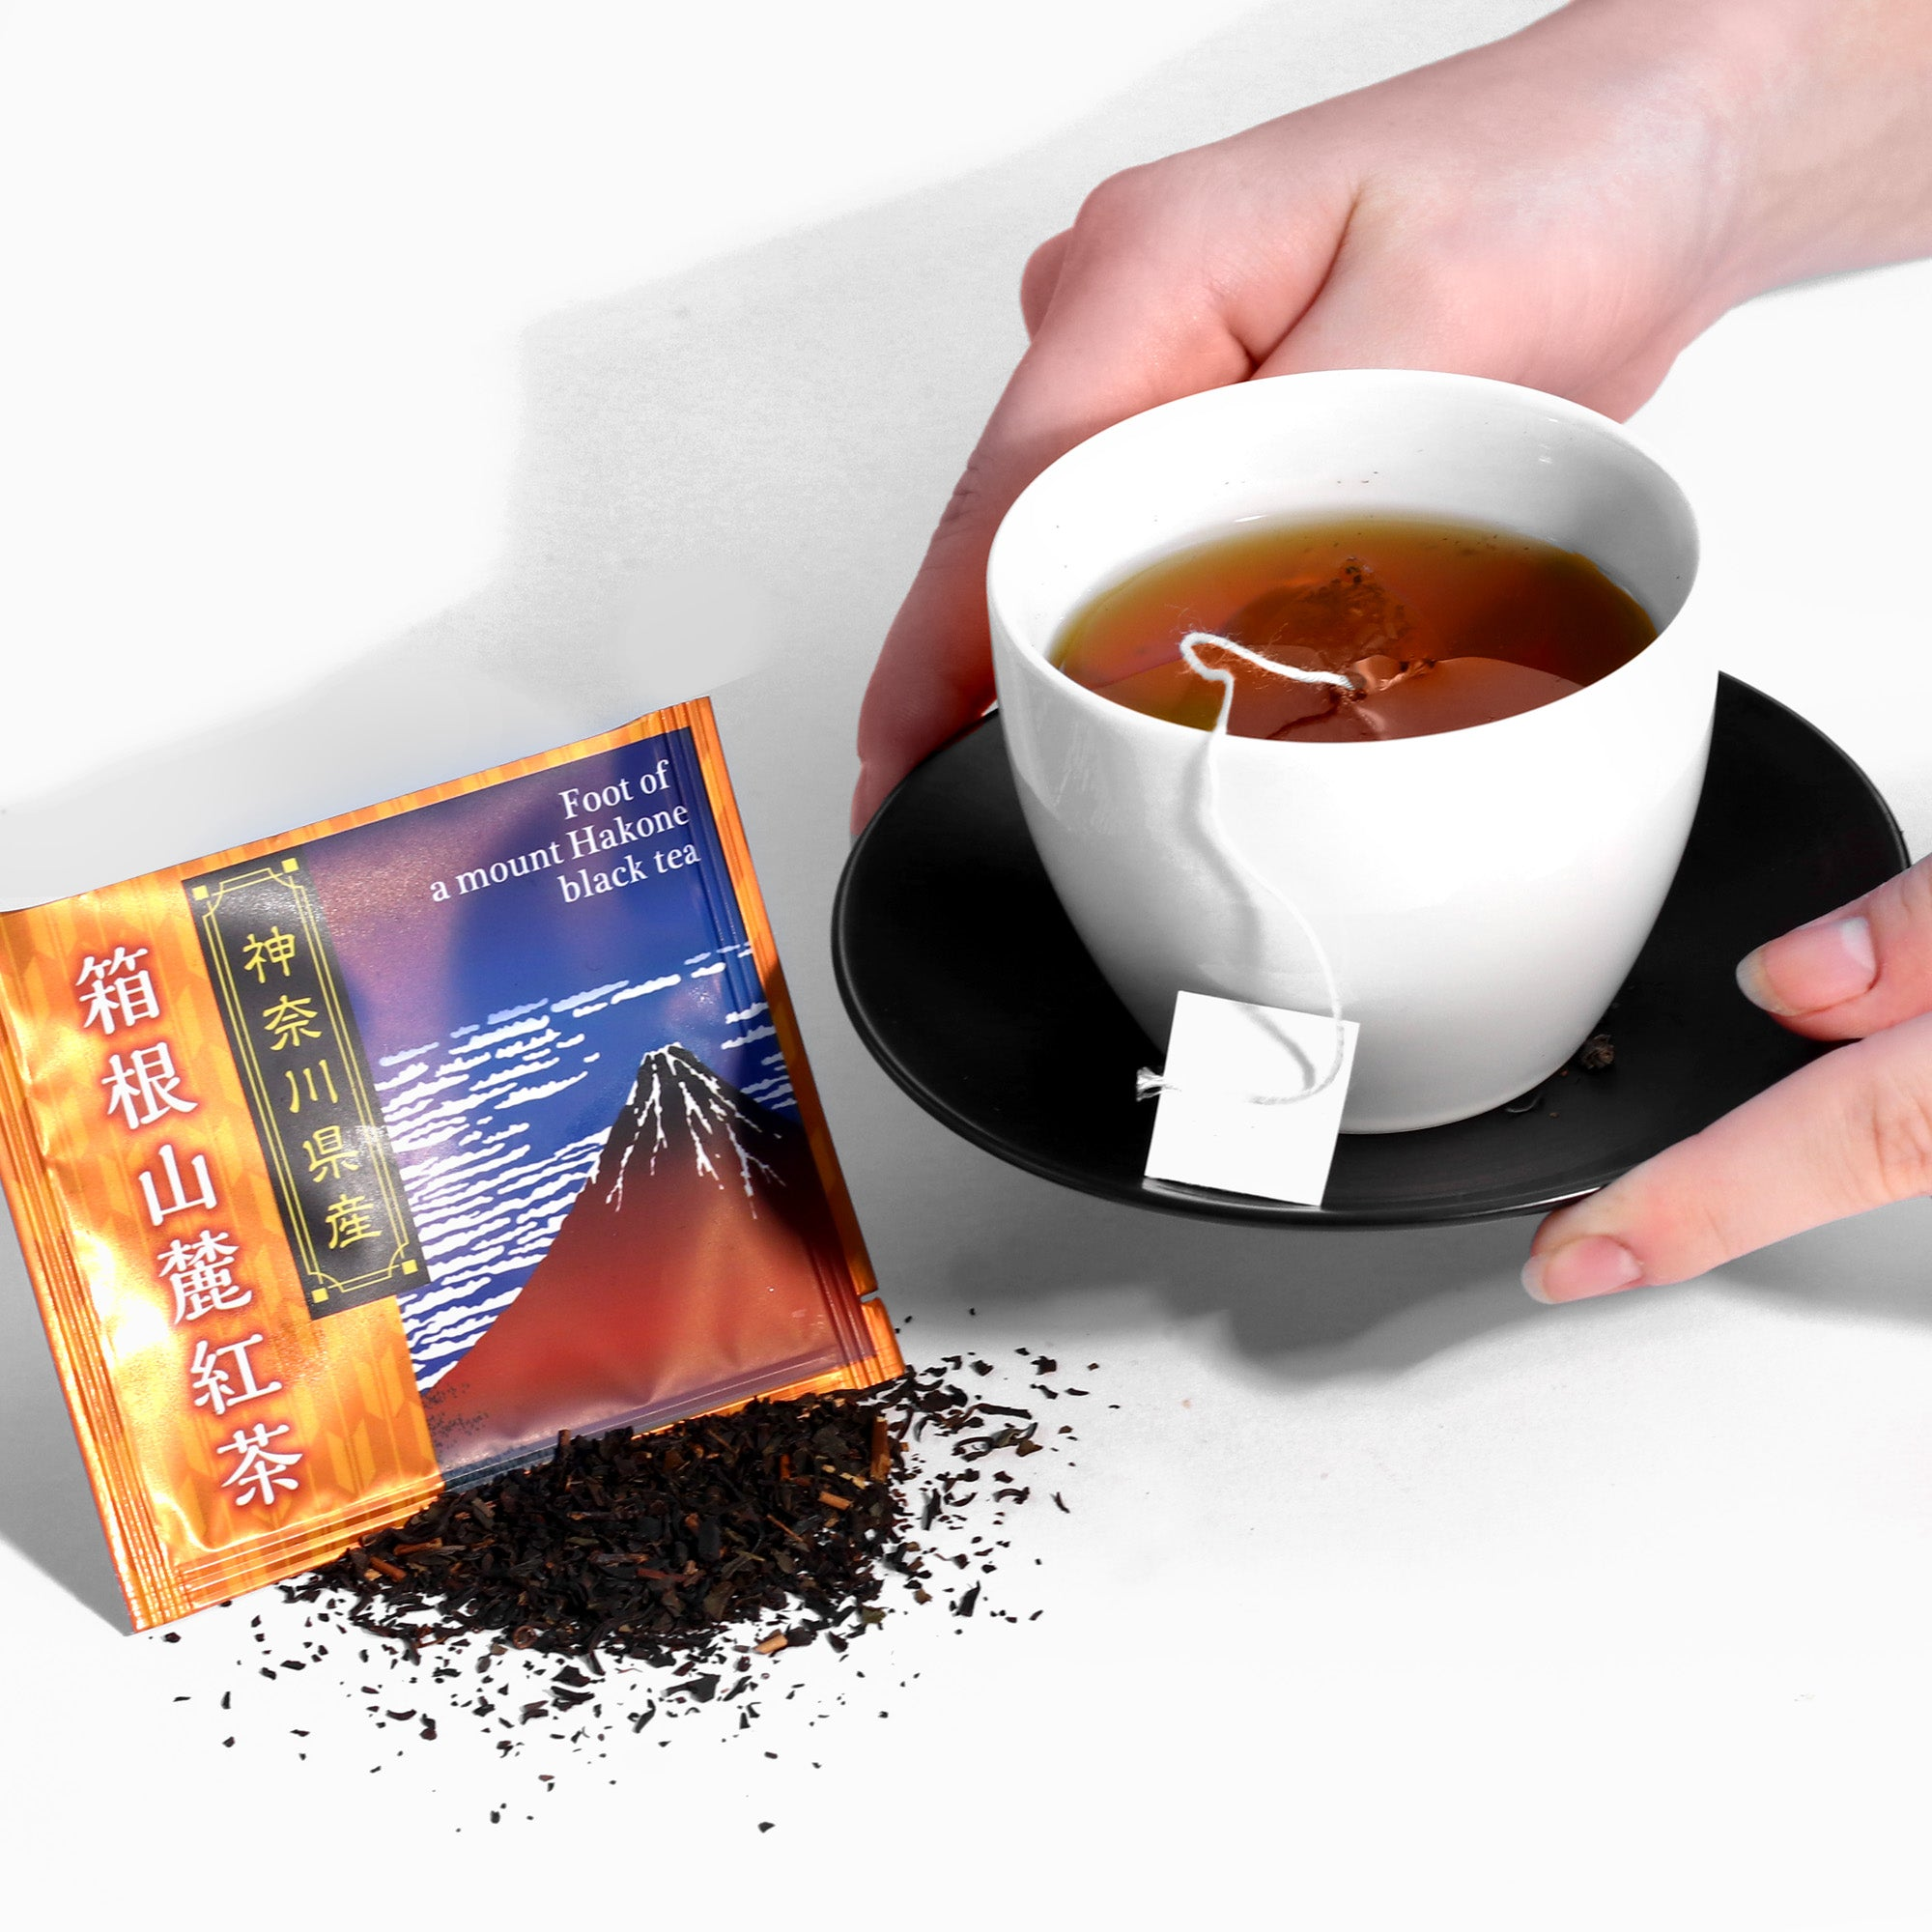 Hakone Sanroku Black Tea Akafuji (1 Bag)